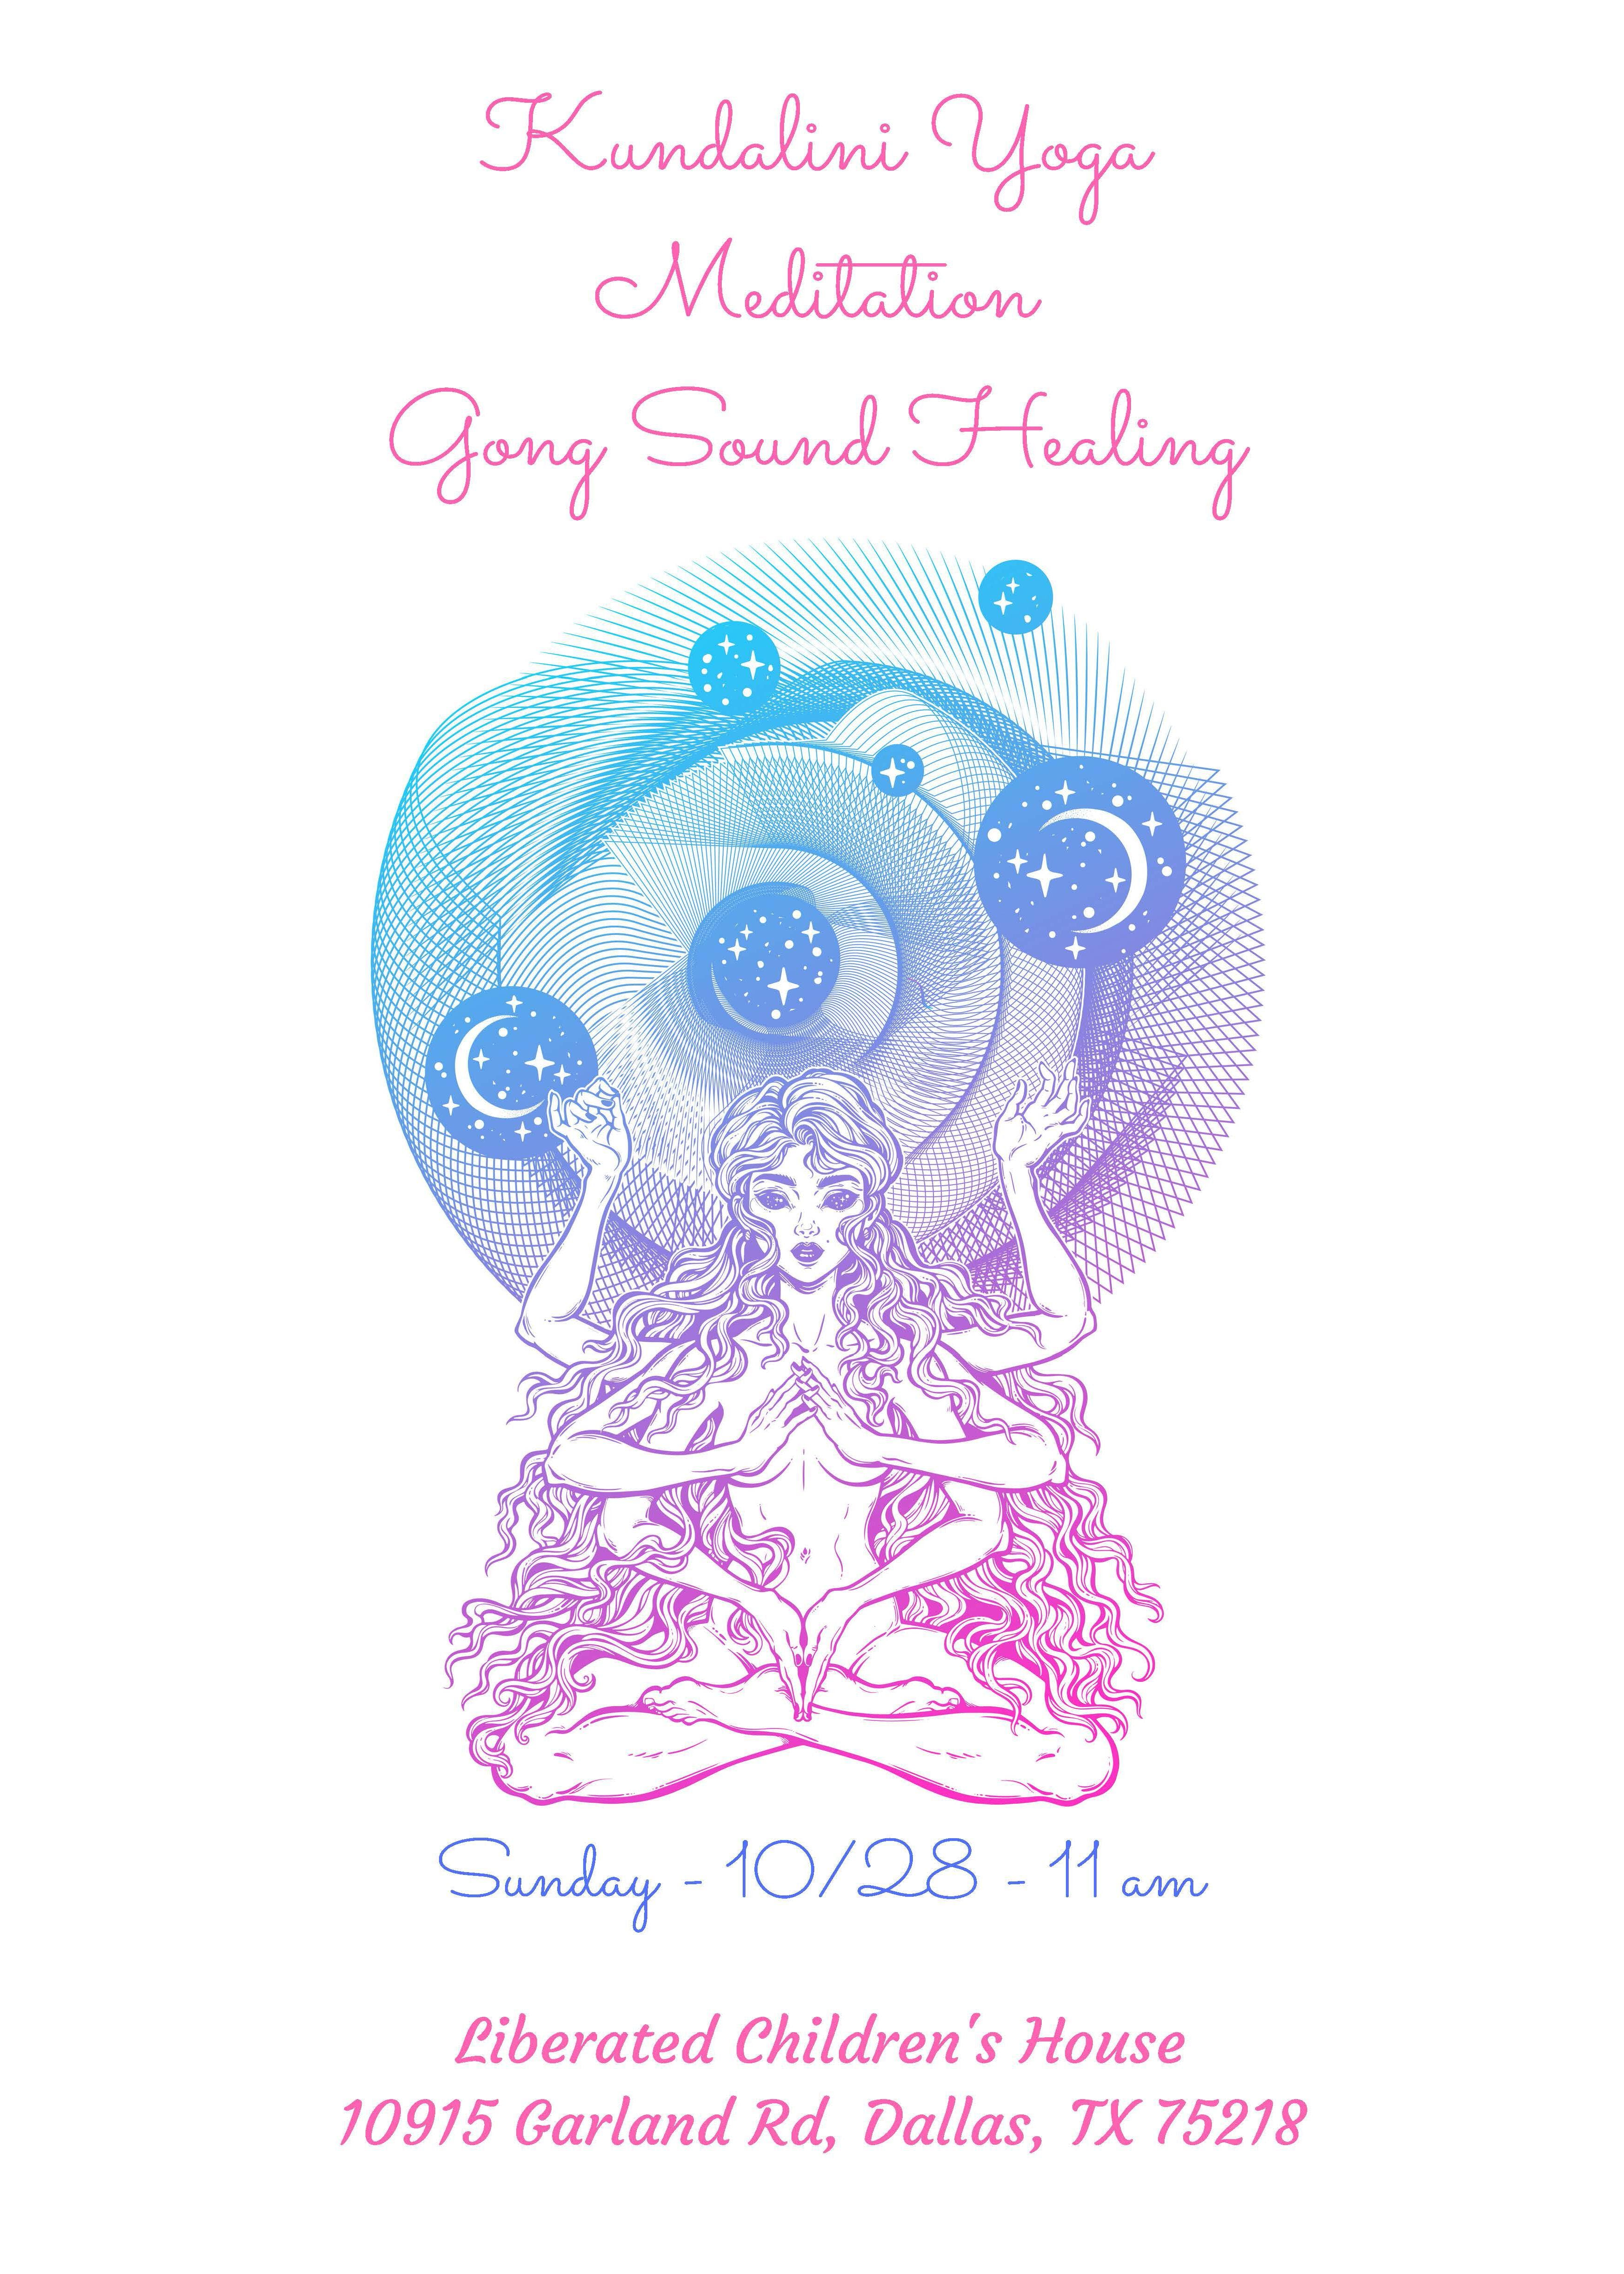 Kundalini Yoga Meditation And Gong Sound Bath Sunday October 28th 11am 28 Oct 2018